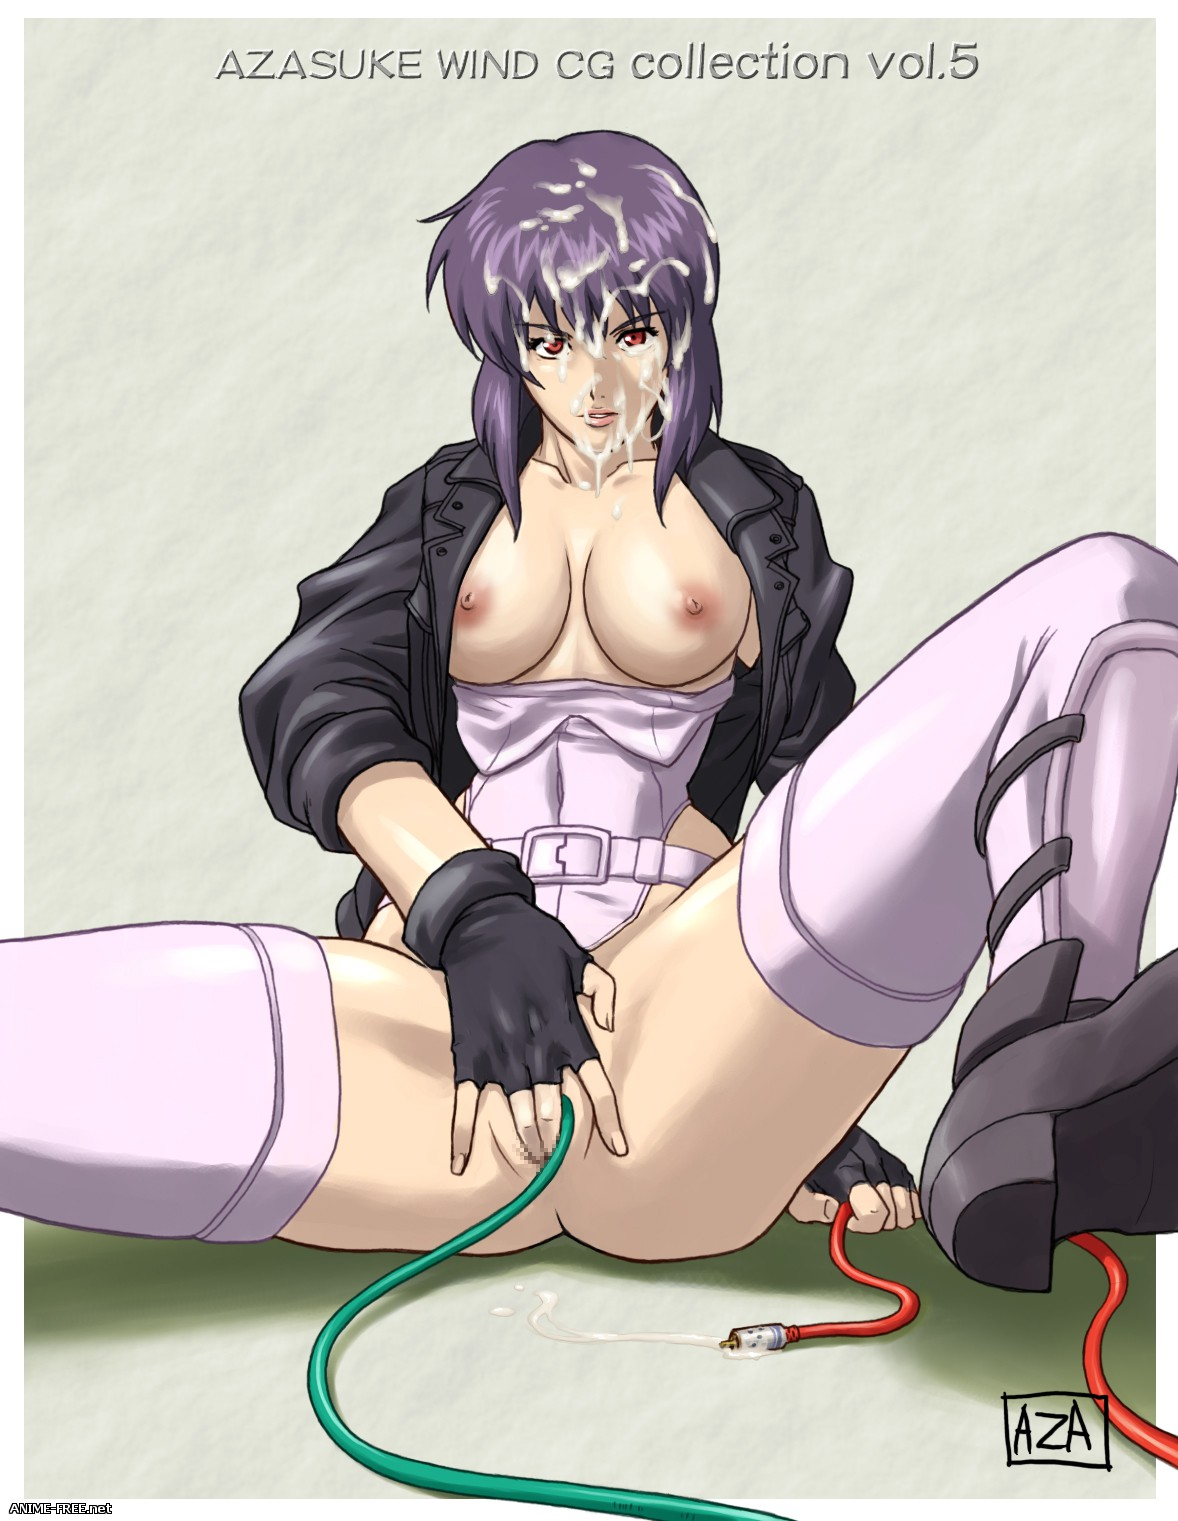 (Collection) Ghost in the Shell / Призрак в доспехах [Ptcen] [JPG,PNG,GIF] Hentai ART